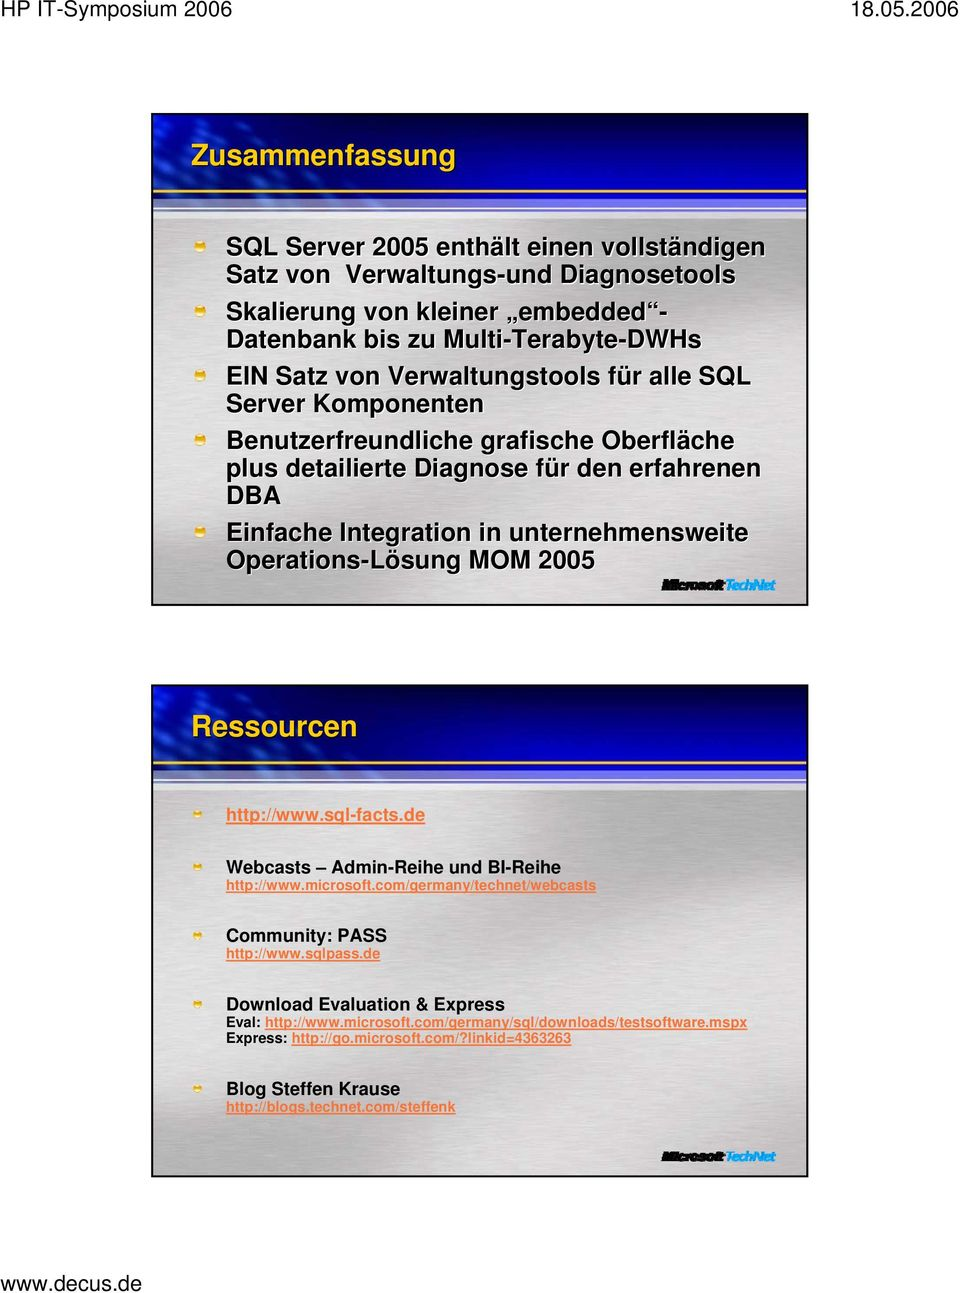 Operations-Lösung sung MOM 2005 Ressourcen http://www.sql-facts.de Webcasts Admin-Reihe und BI-Reihe http://www.microsoft.com/germany/technet/webcasts Community: PASS http://www.sqlpass.